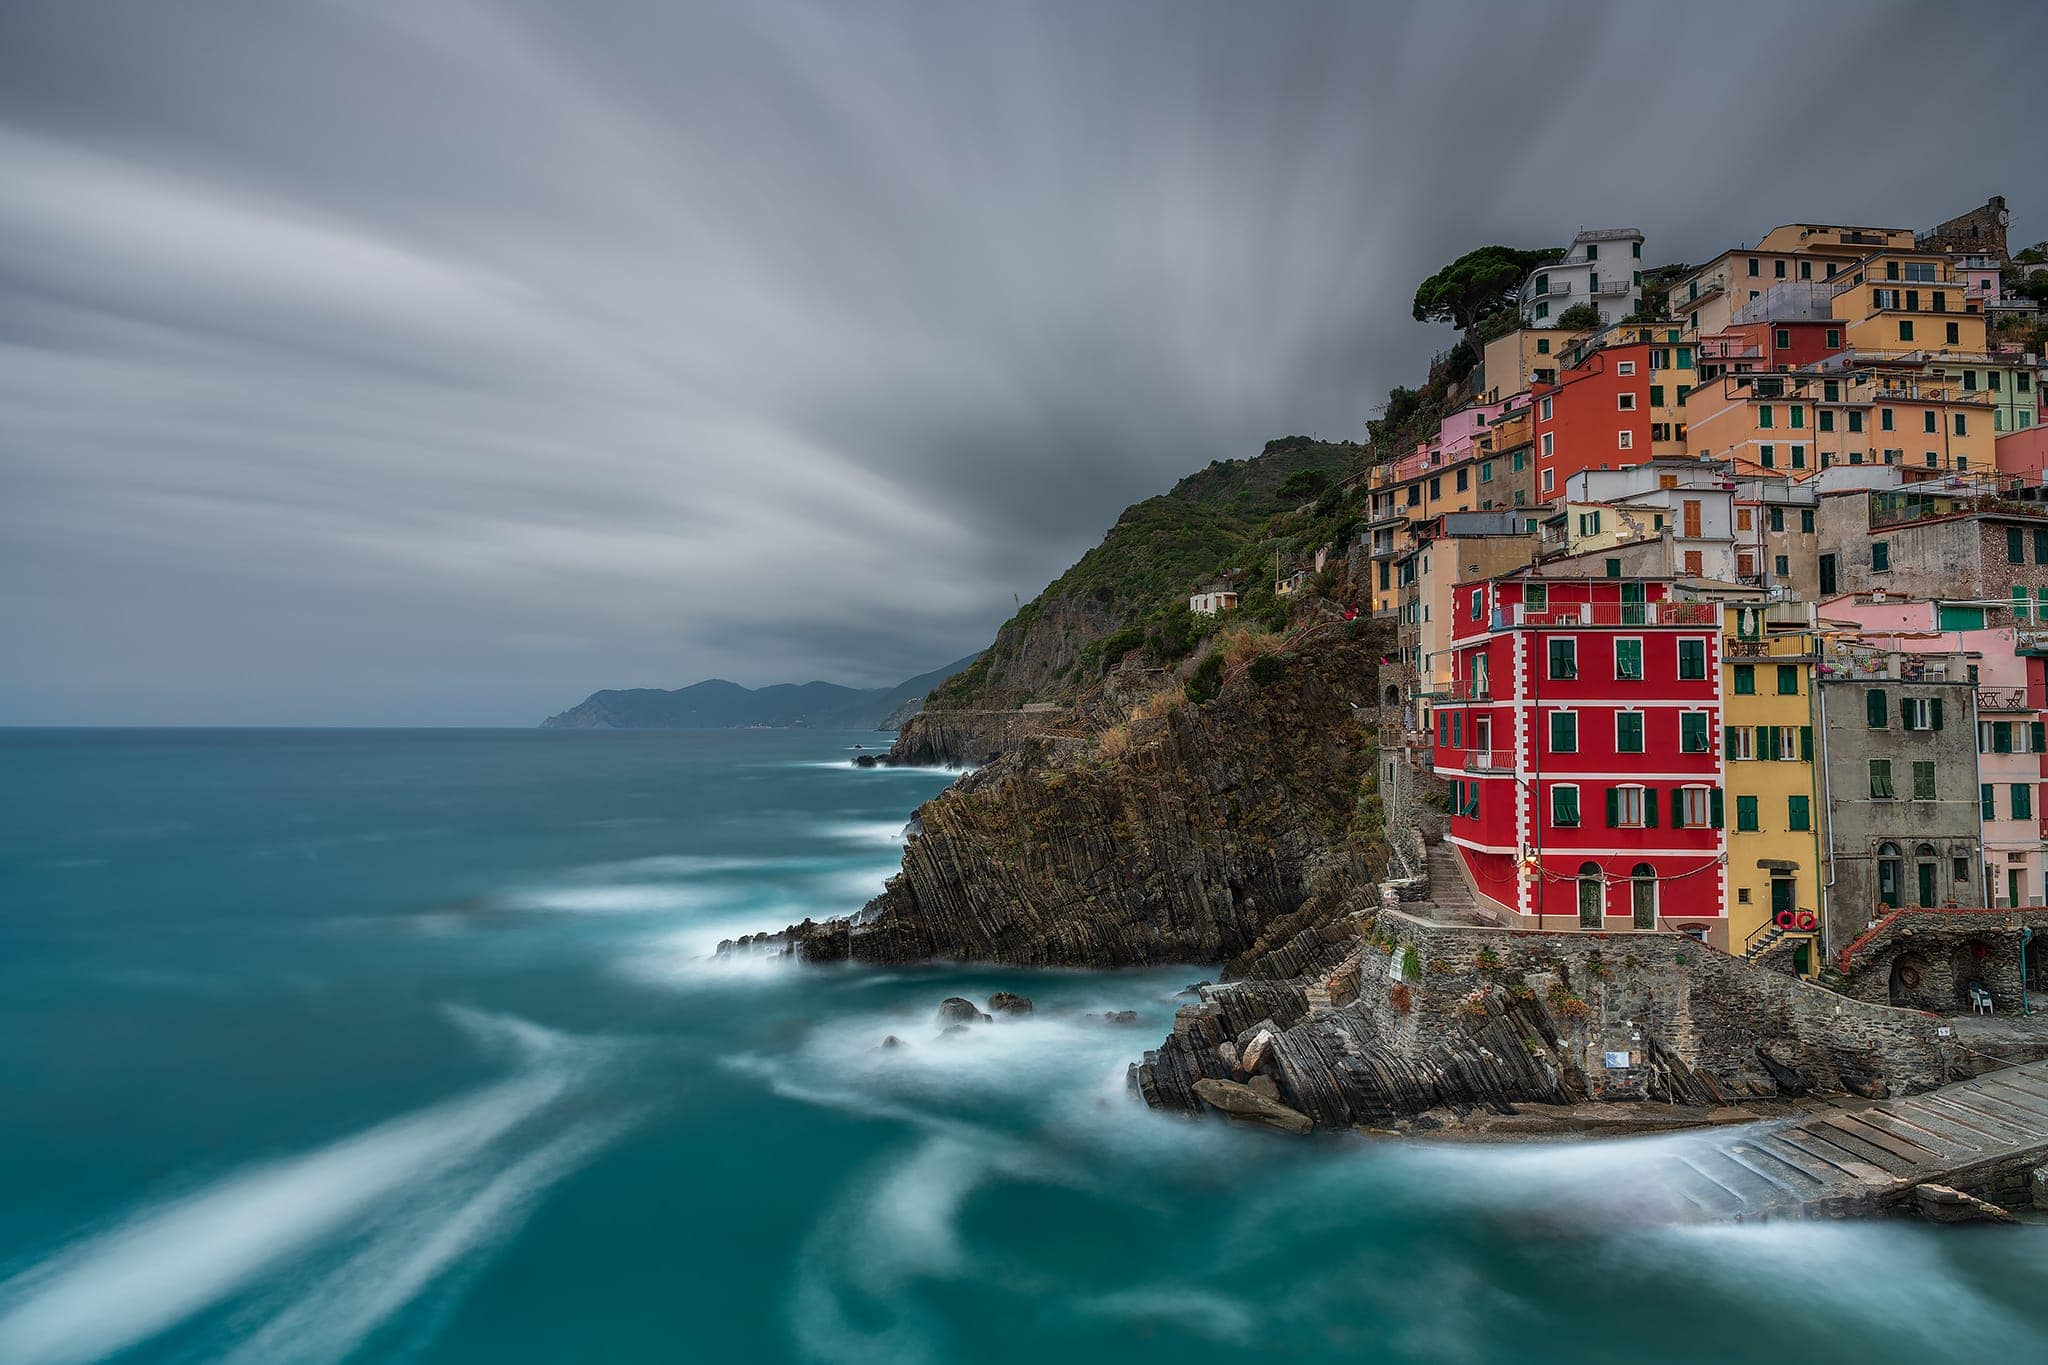 Francesco Gola Landscape Seascape Photography Long Exposure Manarola Storm Winter Italy Italia Cinque Terre Blue Cold